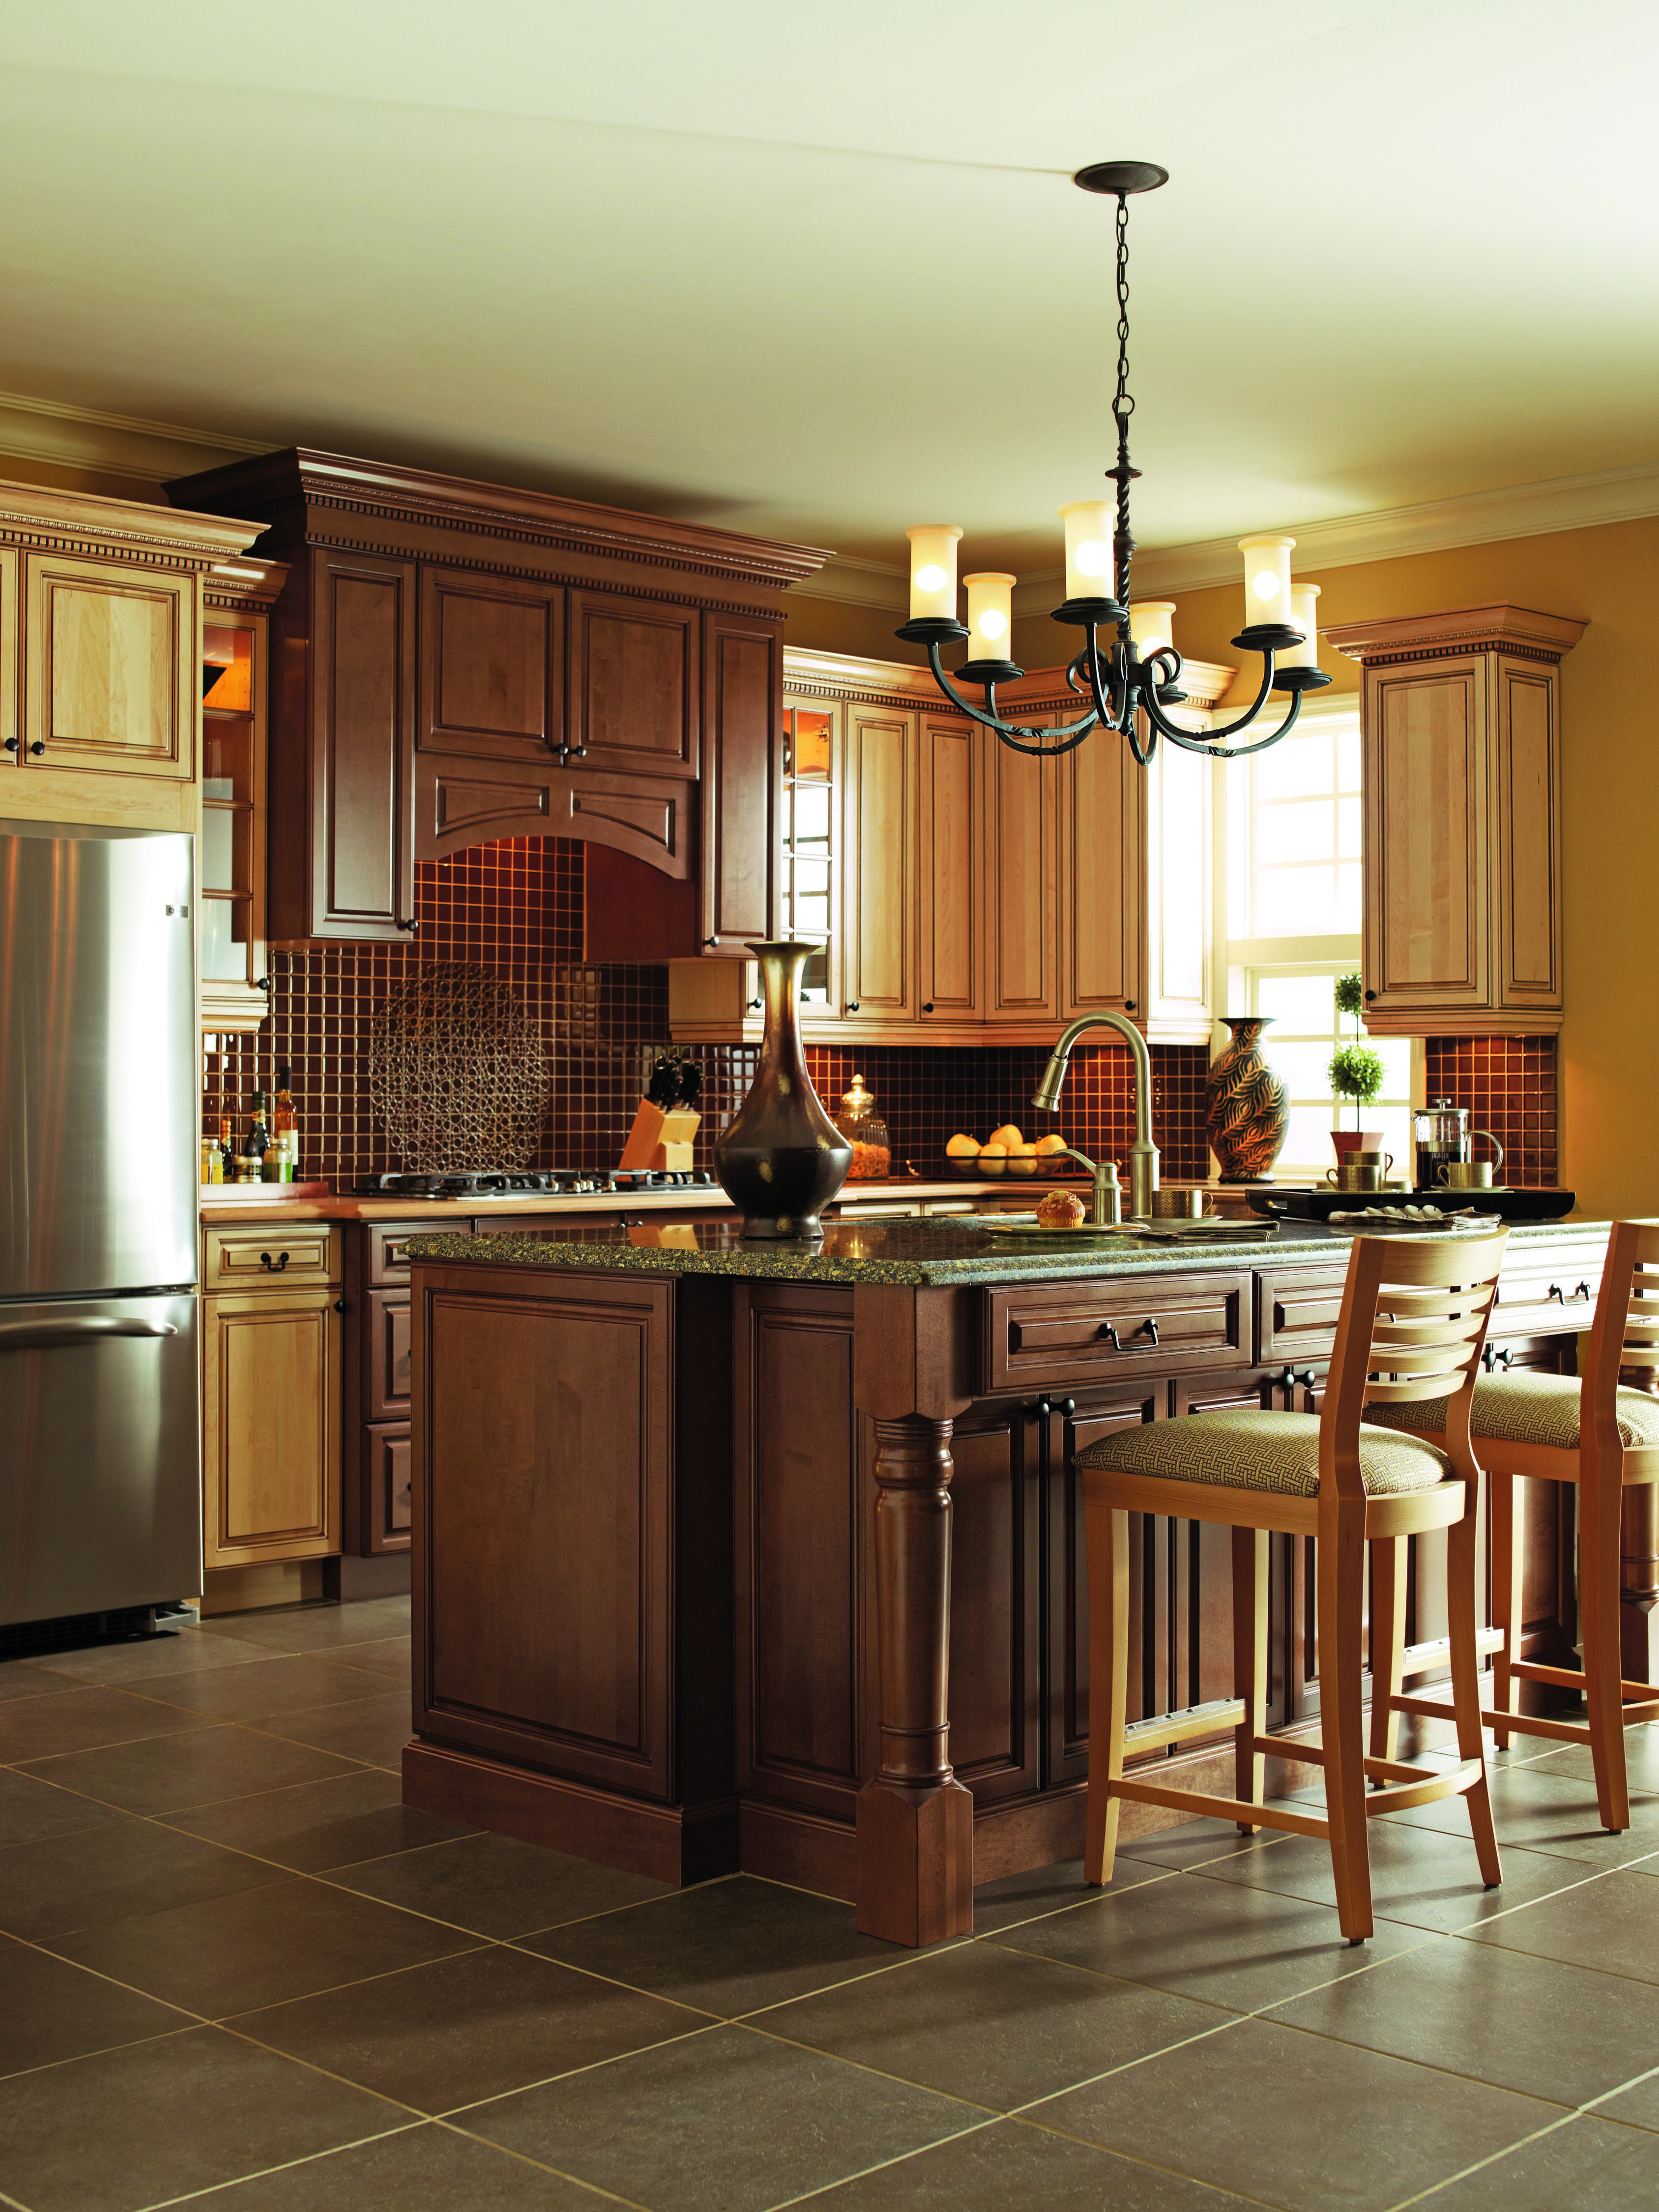 Home Depot Canada Kitchen Island White Wall Cabinets Traditional From Thomasville Classic Fall